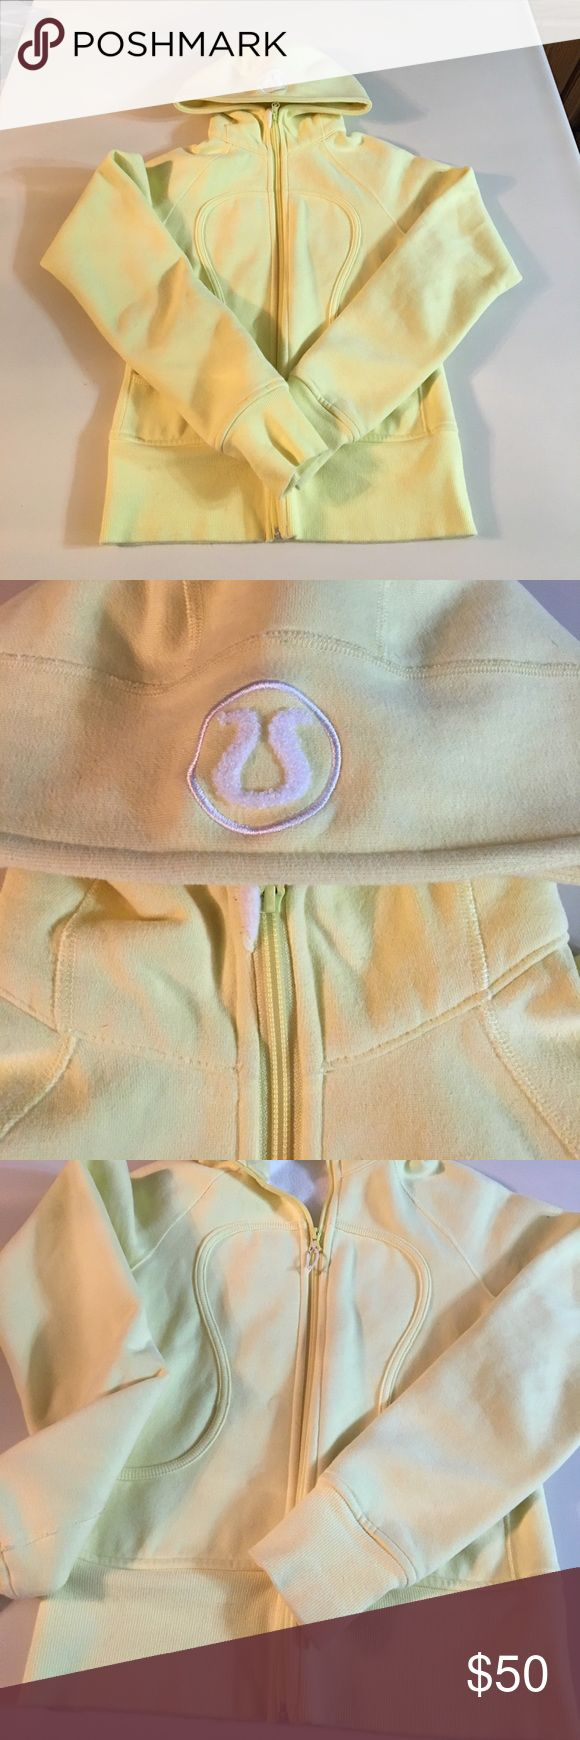 Yellow Lululemon Hoodie sweatshirt Rare color! Light yellow lululemon hoodie with logo on hood. Does not have tag on the inside, but I believe it is a size 4. Great, like new condition. lululemon athletica Tops Sweatshirts & Hoodies